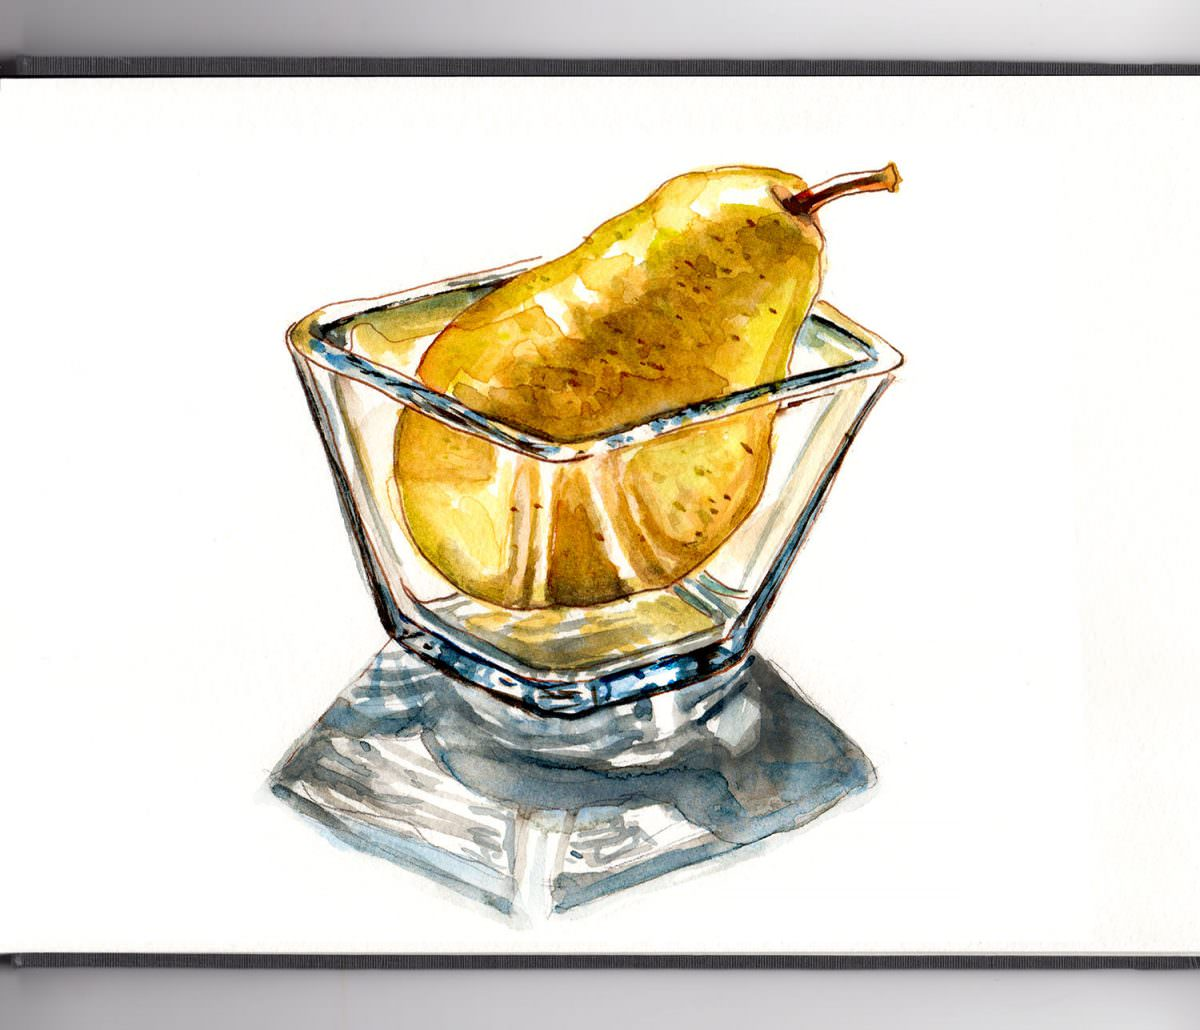 #WorldWatercolorGroup - Day 16 - A Pear In A Glass - Doodlewash